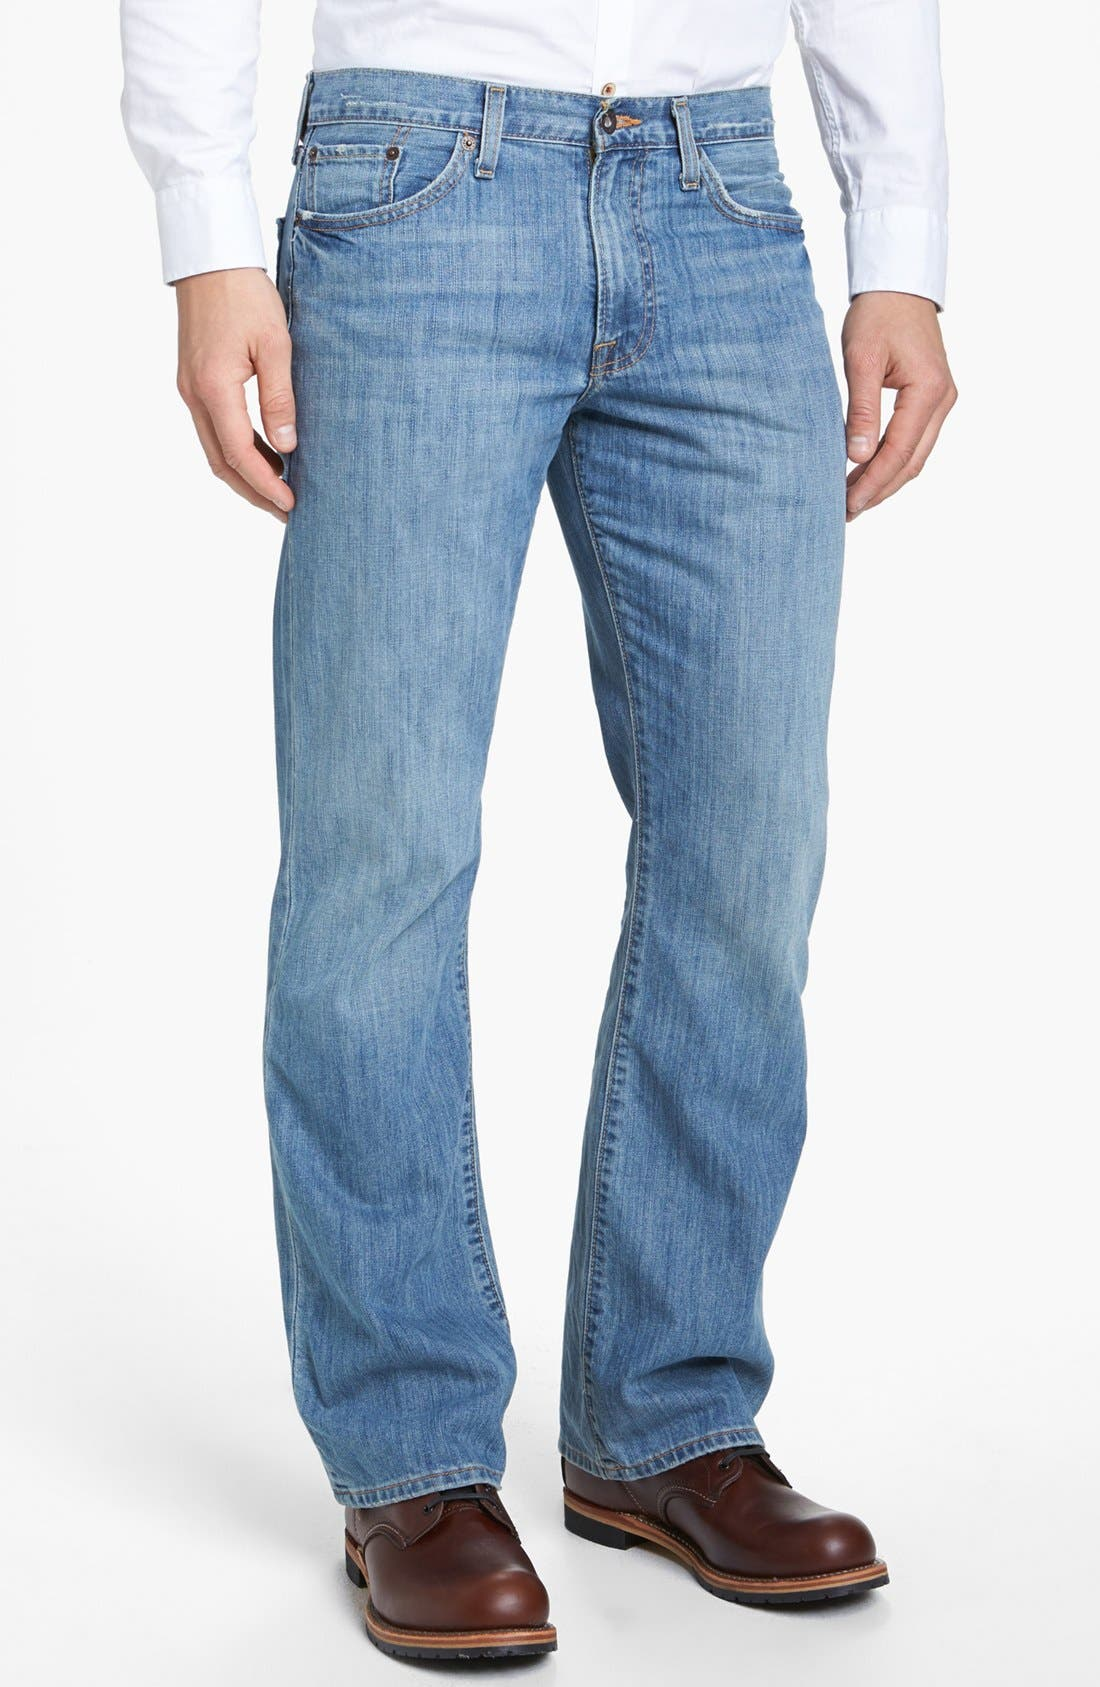 Alternate Image 1 Selected - Lucky Brand '367 Vintage' Bootcut Jeans (Chambers)